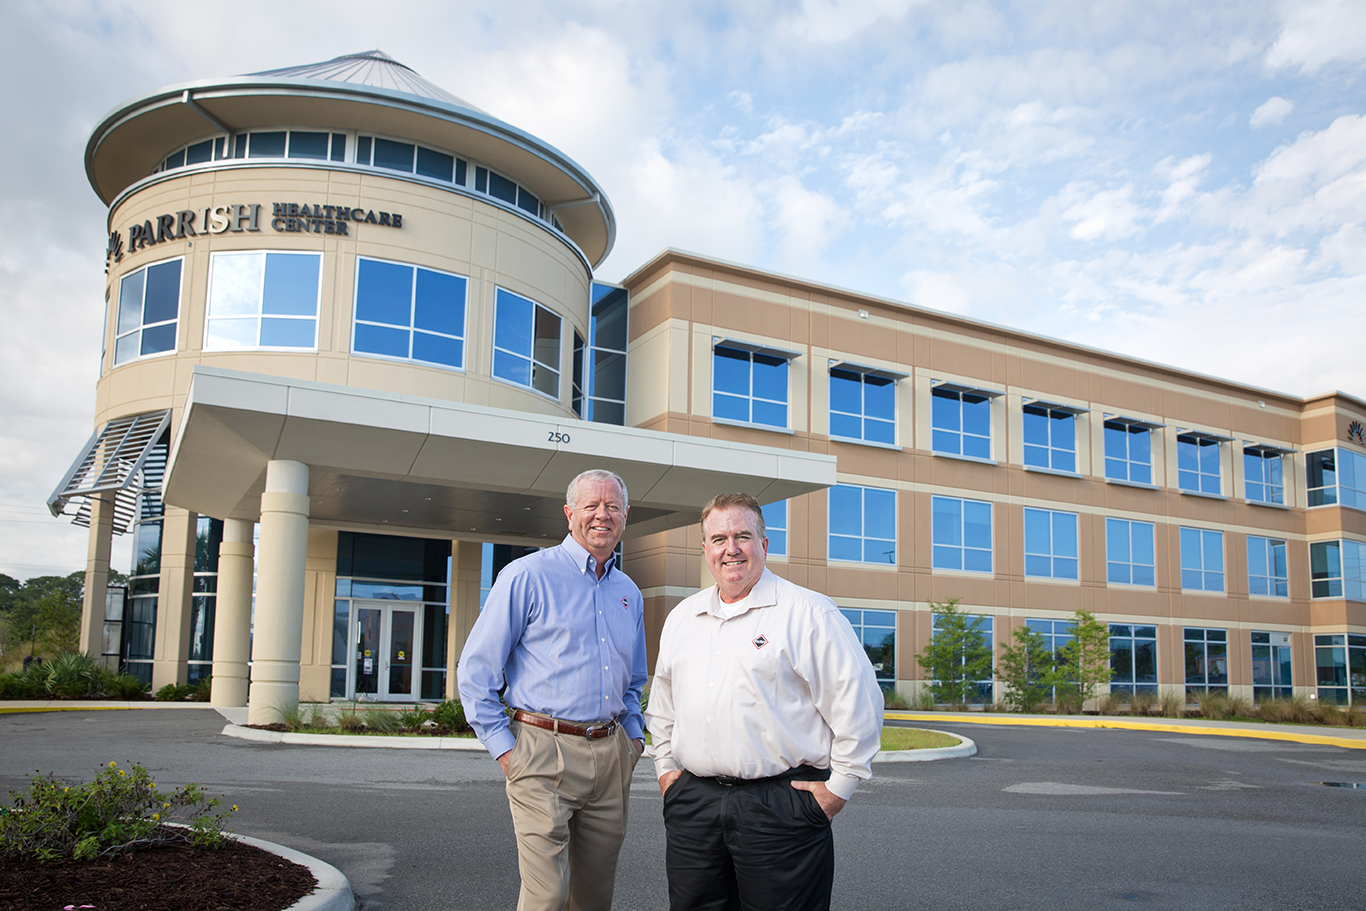 RUSH Construction at Parrish Healthcare Titus Landing with William Chivers and Al Forbes